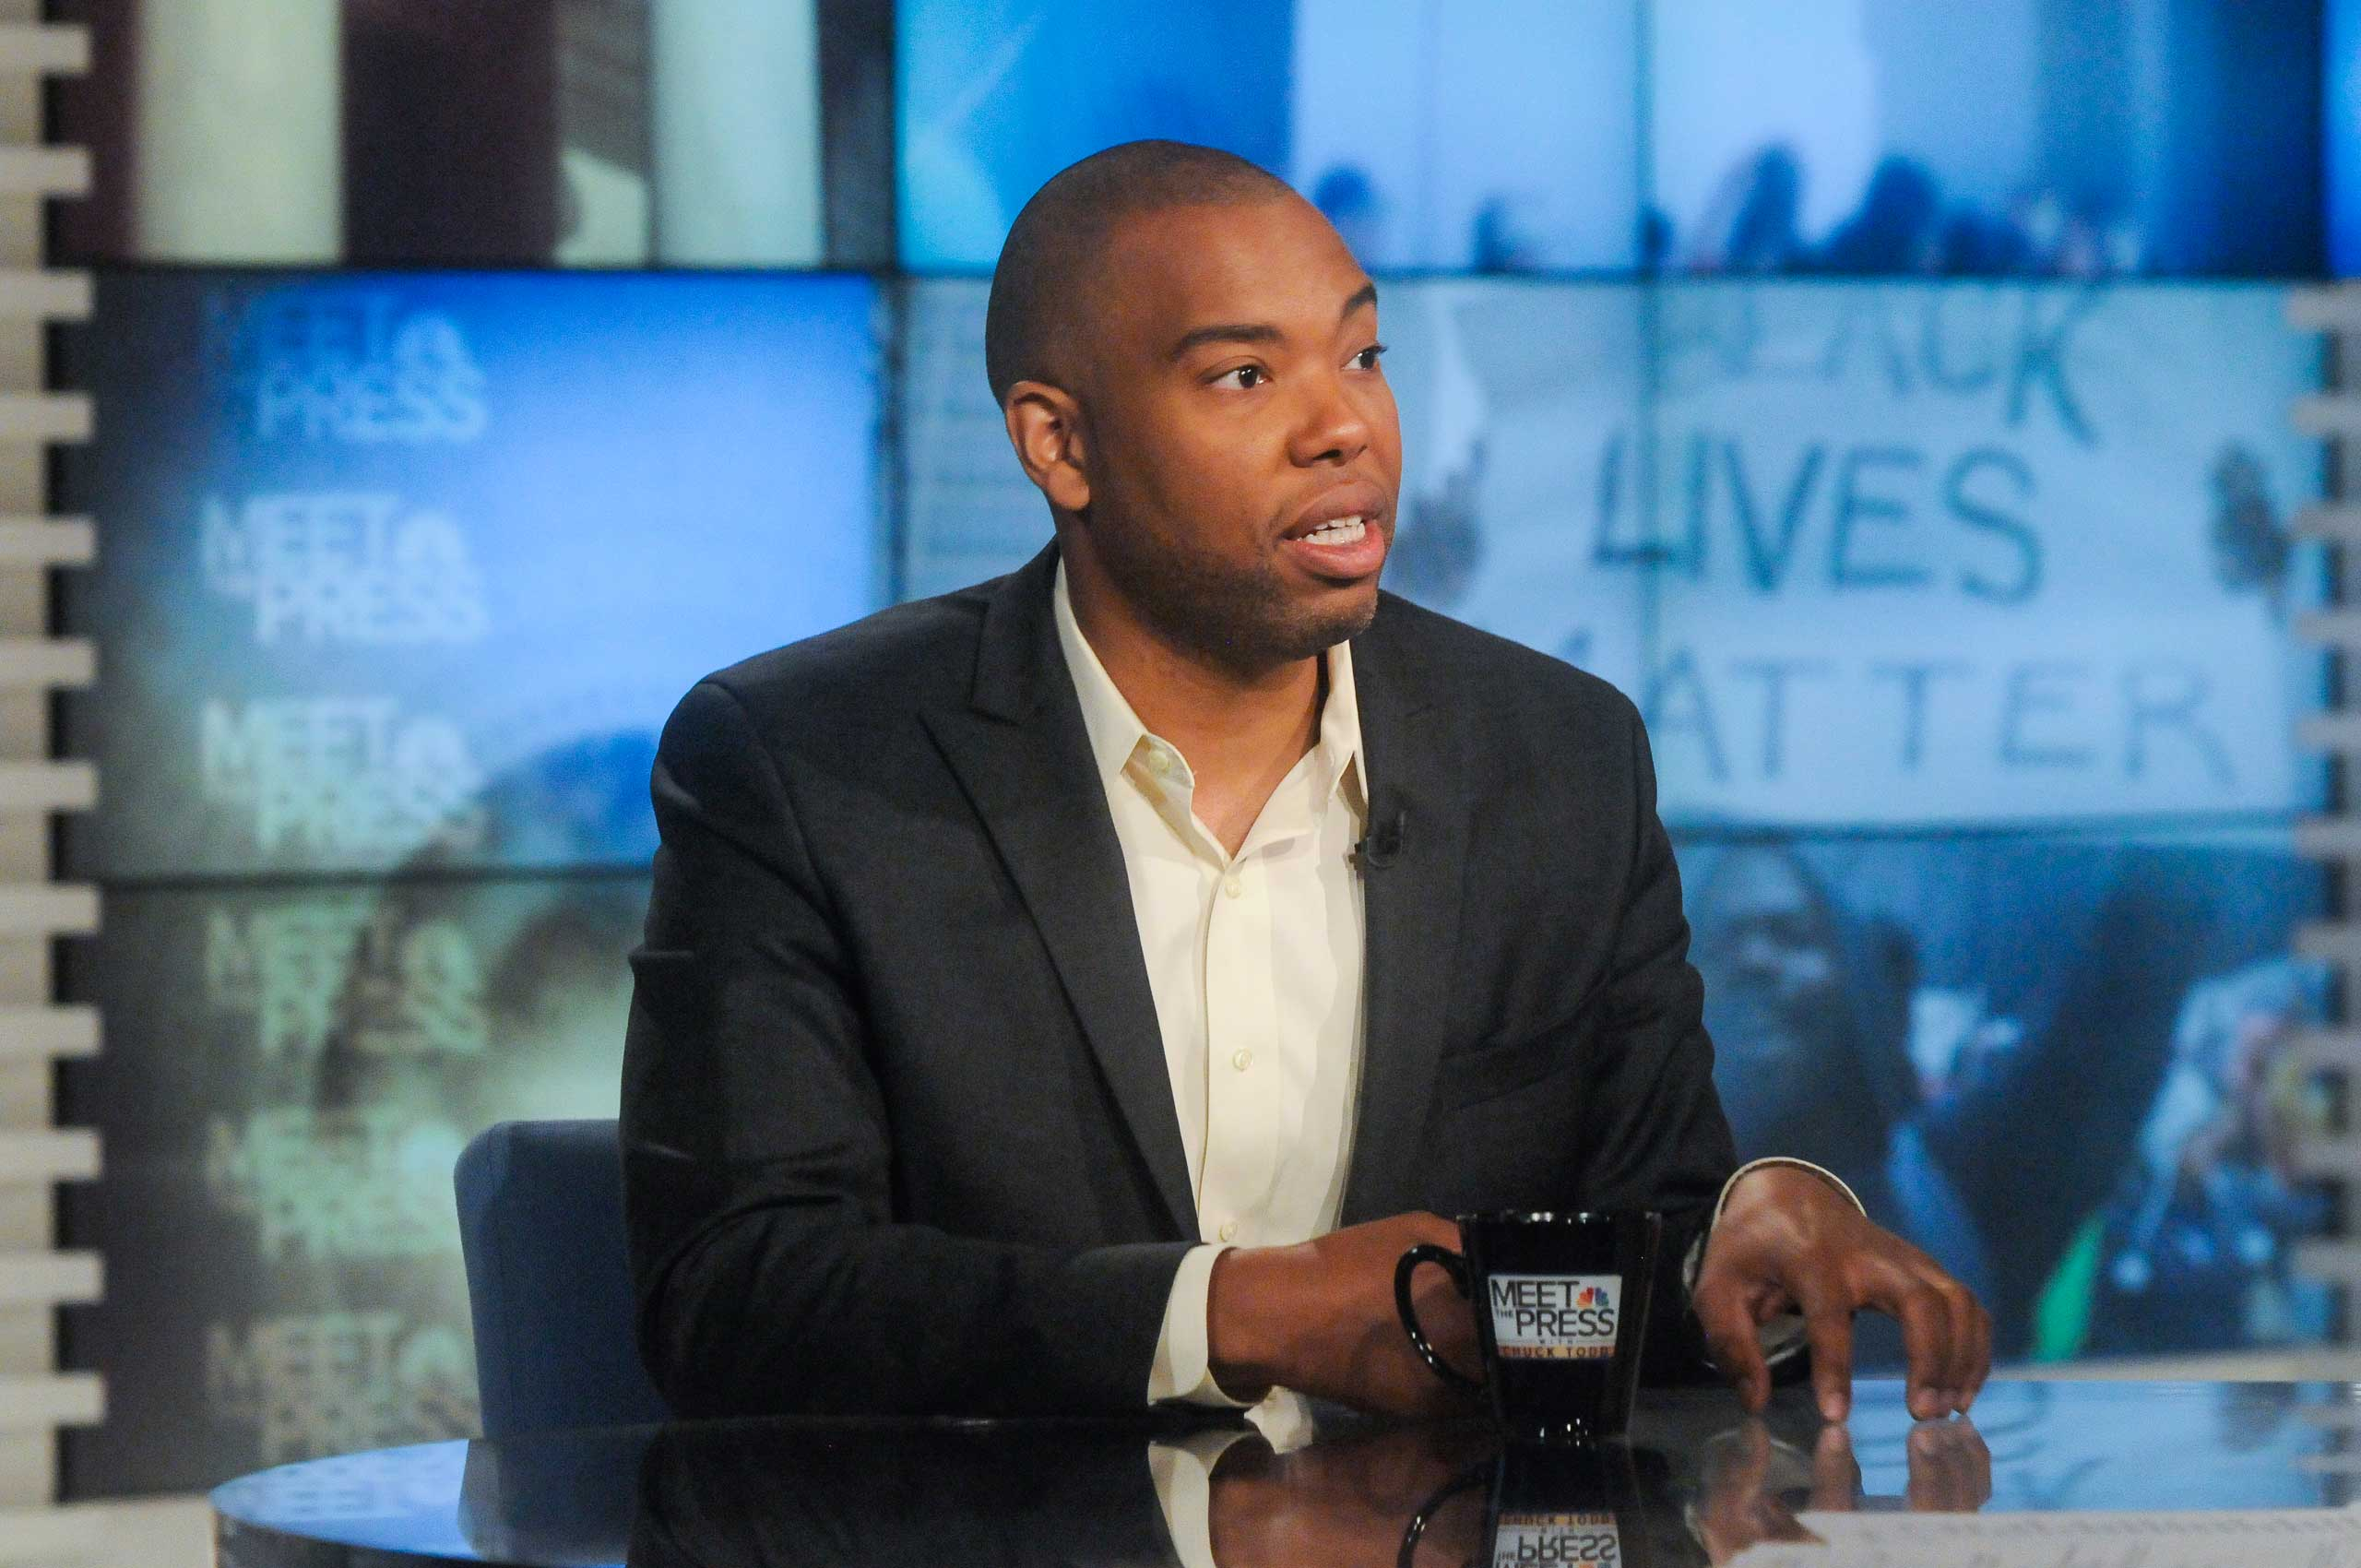 Ta-Nehisi Coates, National Correspondent for The Atlantic and author of  Between the World and Me  appears on  Meet the Press  in Washington, D.C., July 5, 2015.